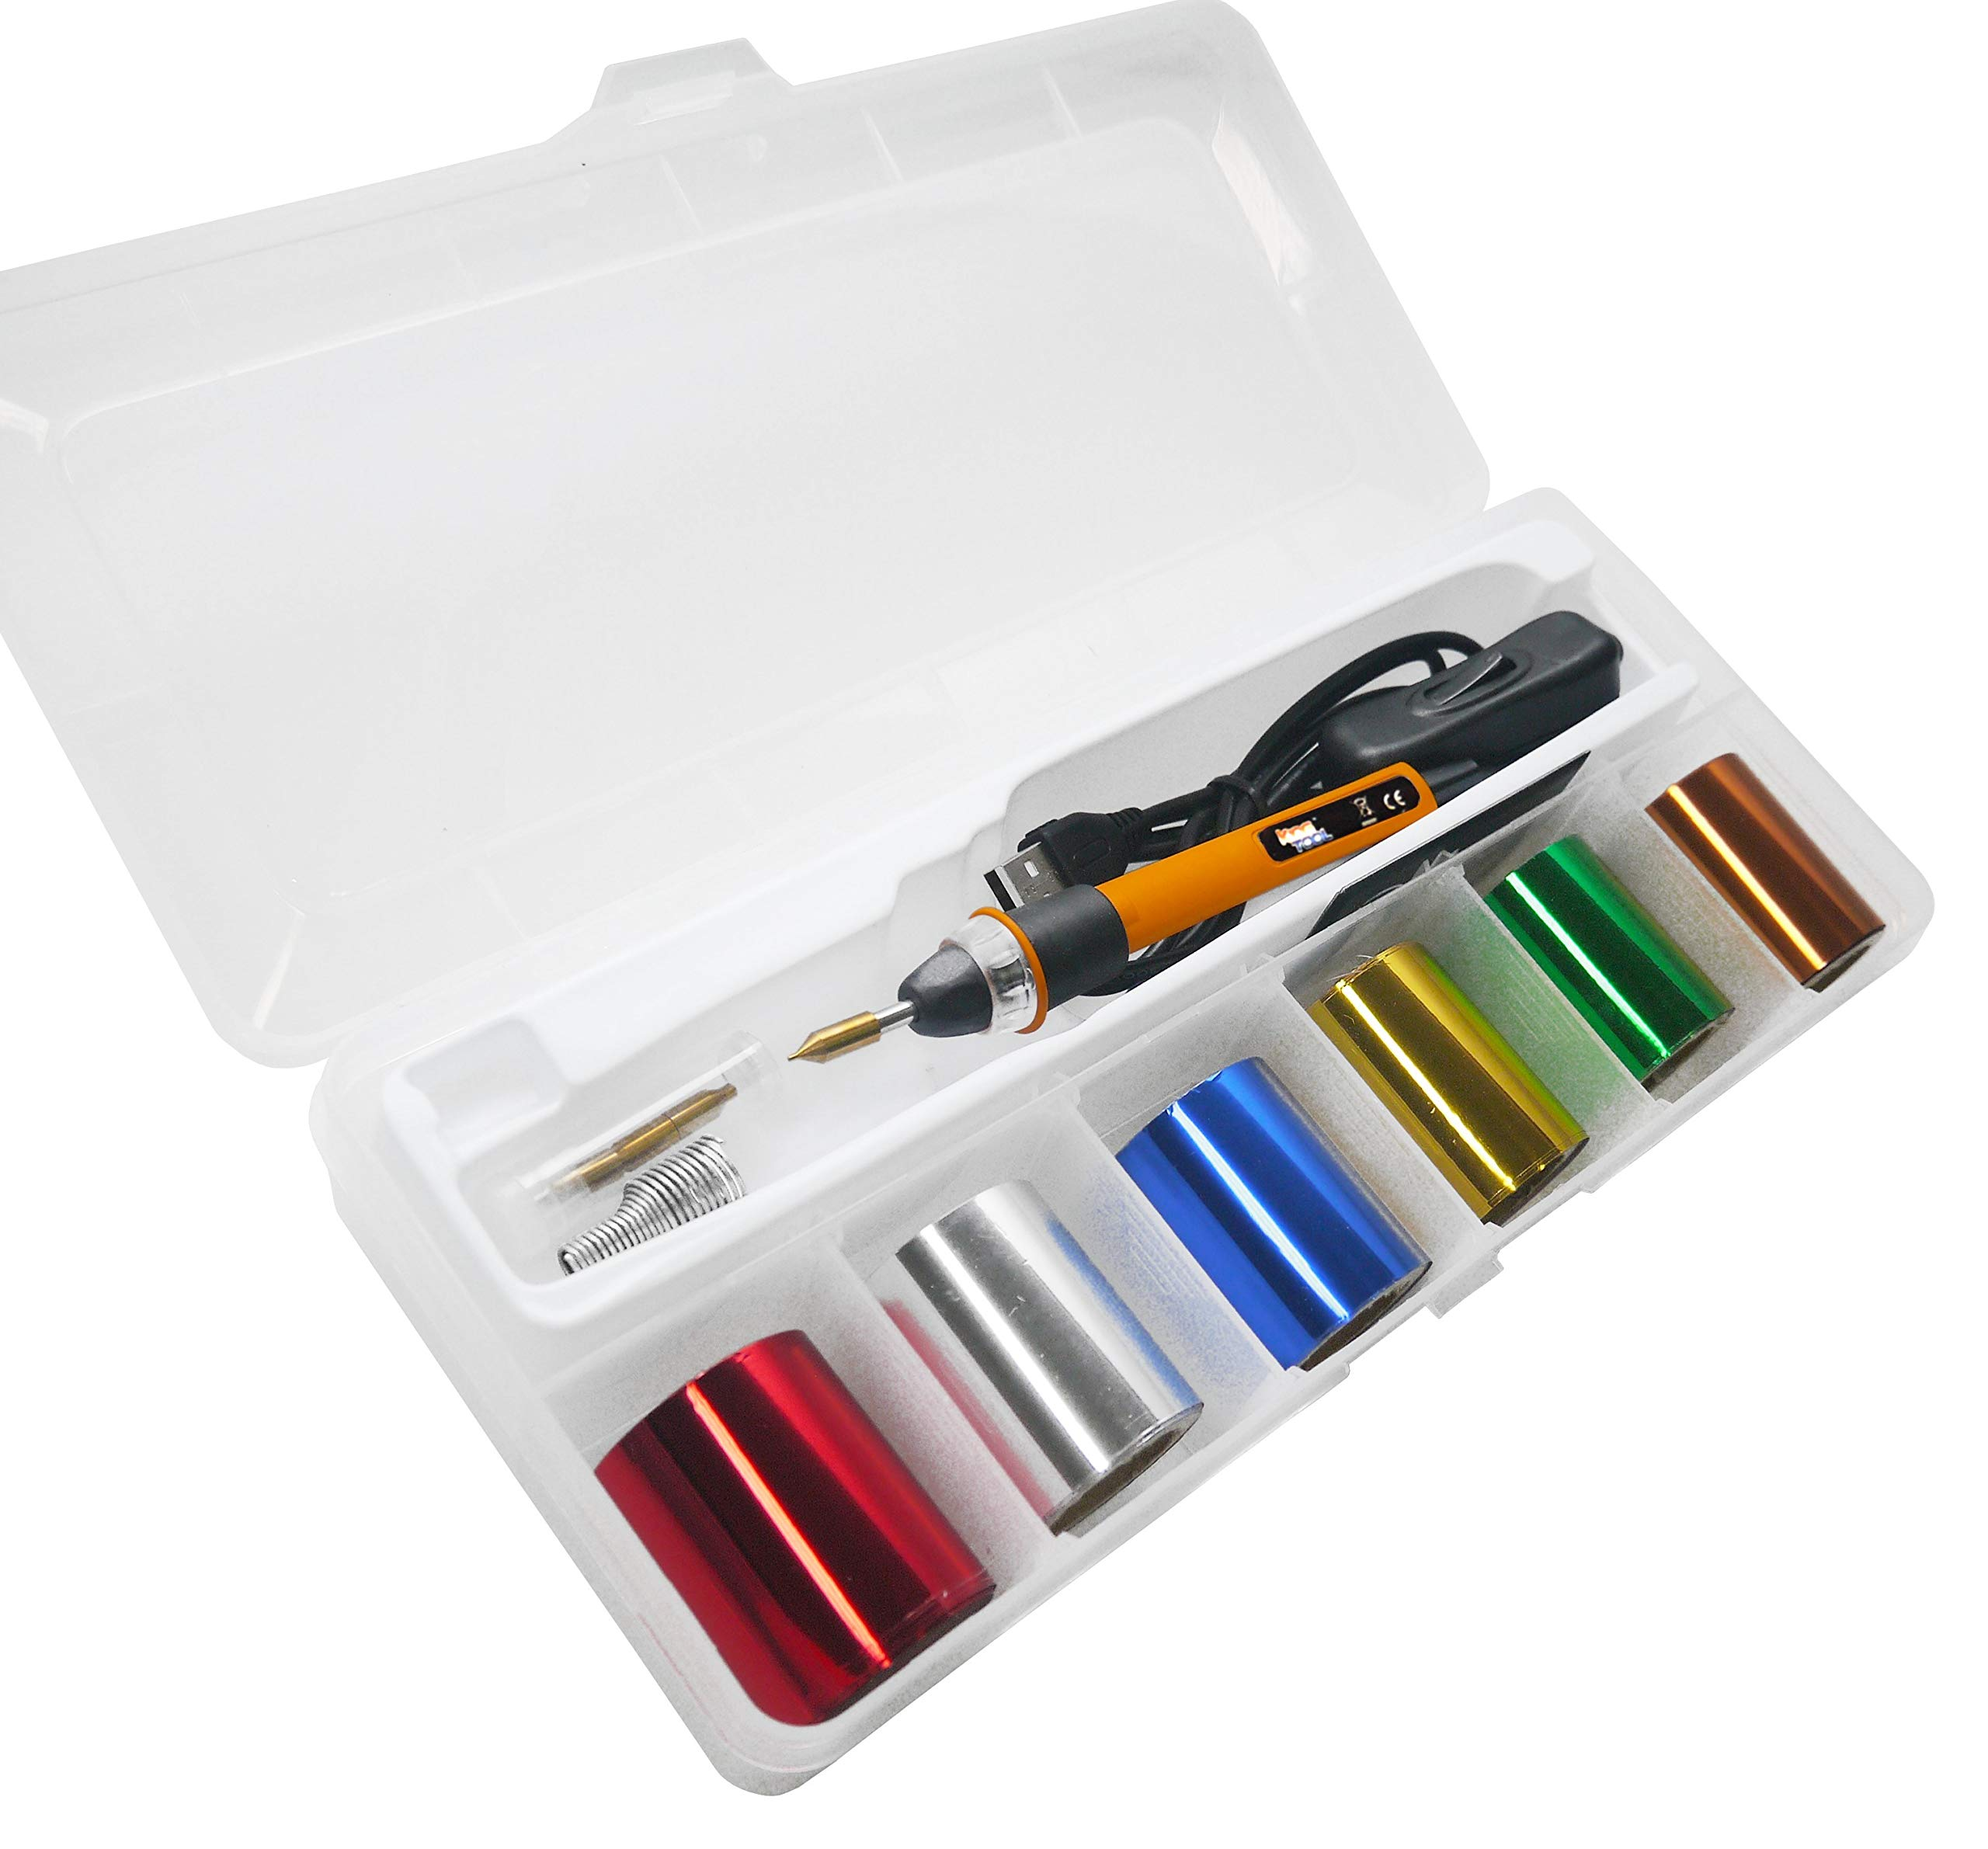 KINGTOOL Hot Foil Stamping Tool Hot Quill Pen Embossing Pen Hot Foil Pen, USB Powered (with 4 Nibs) (Yellow)